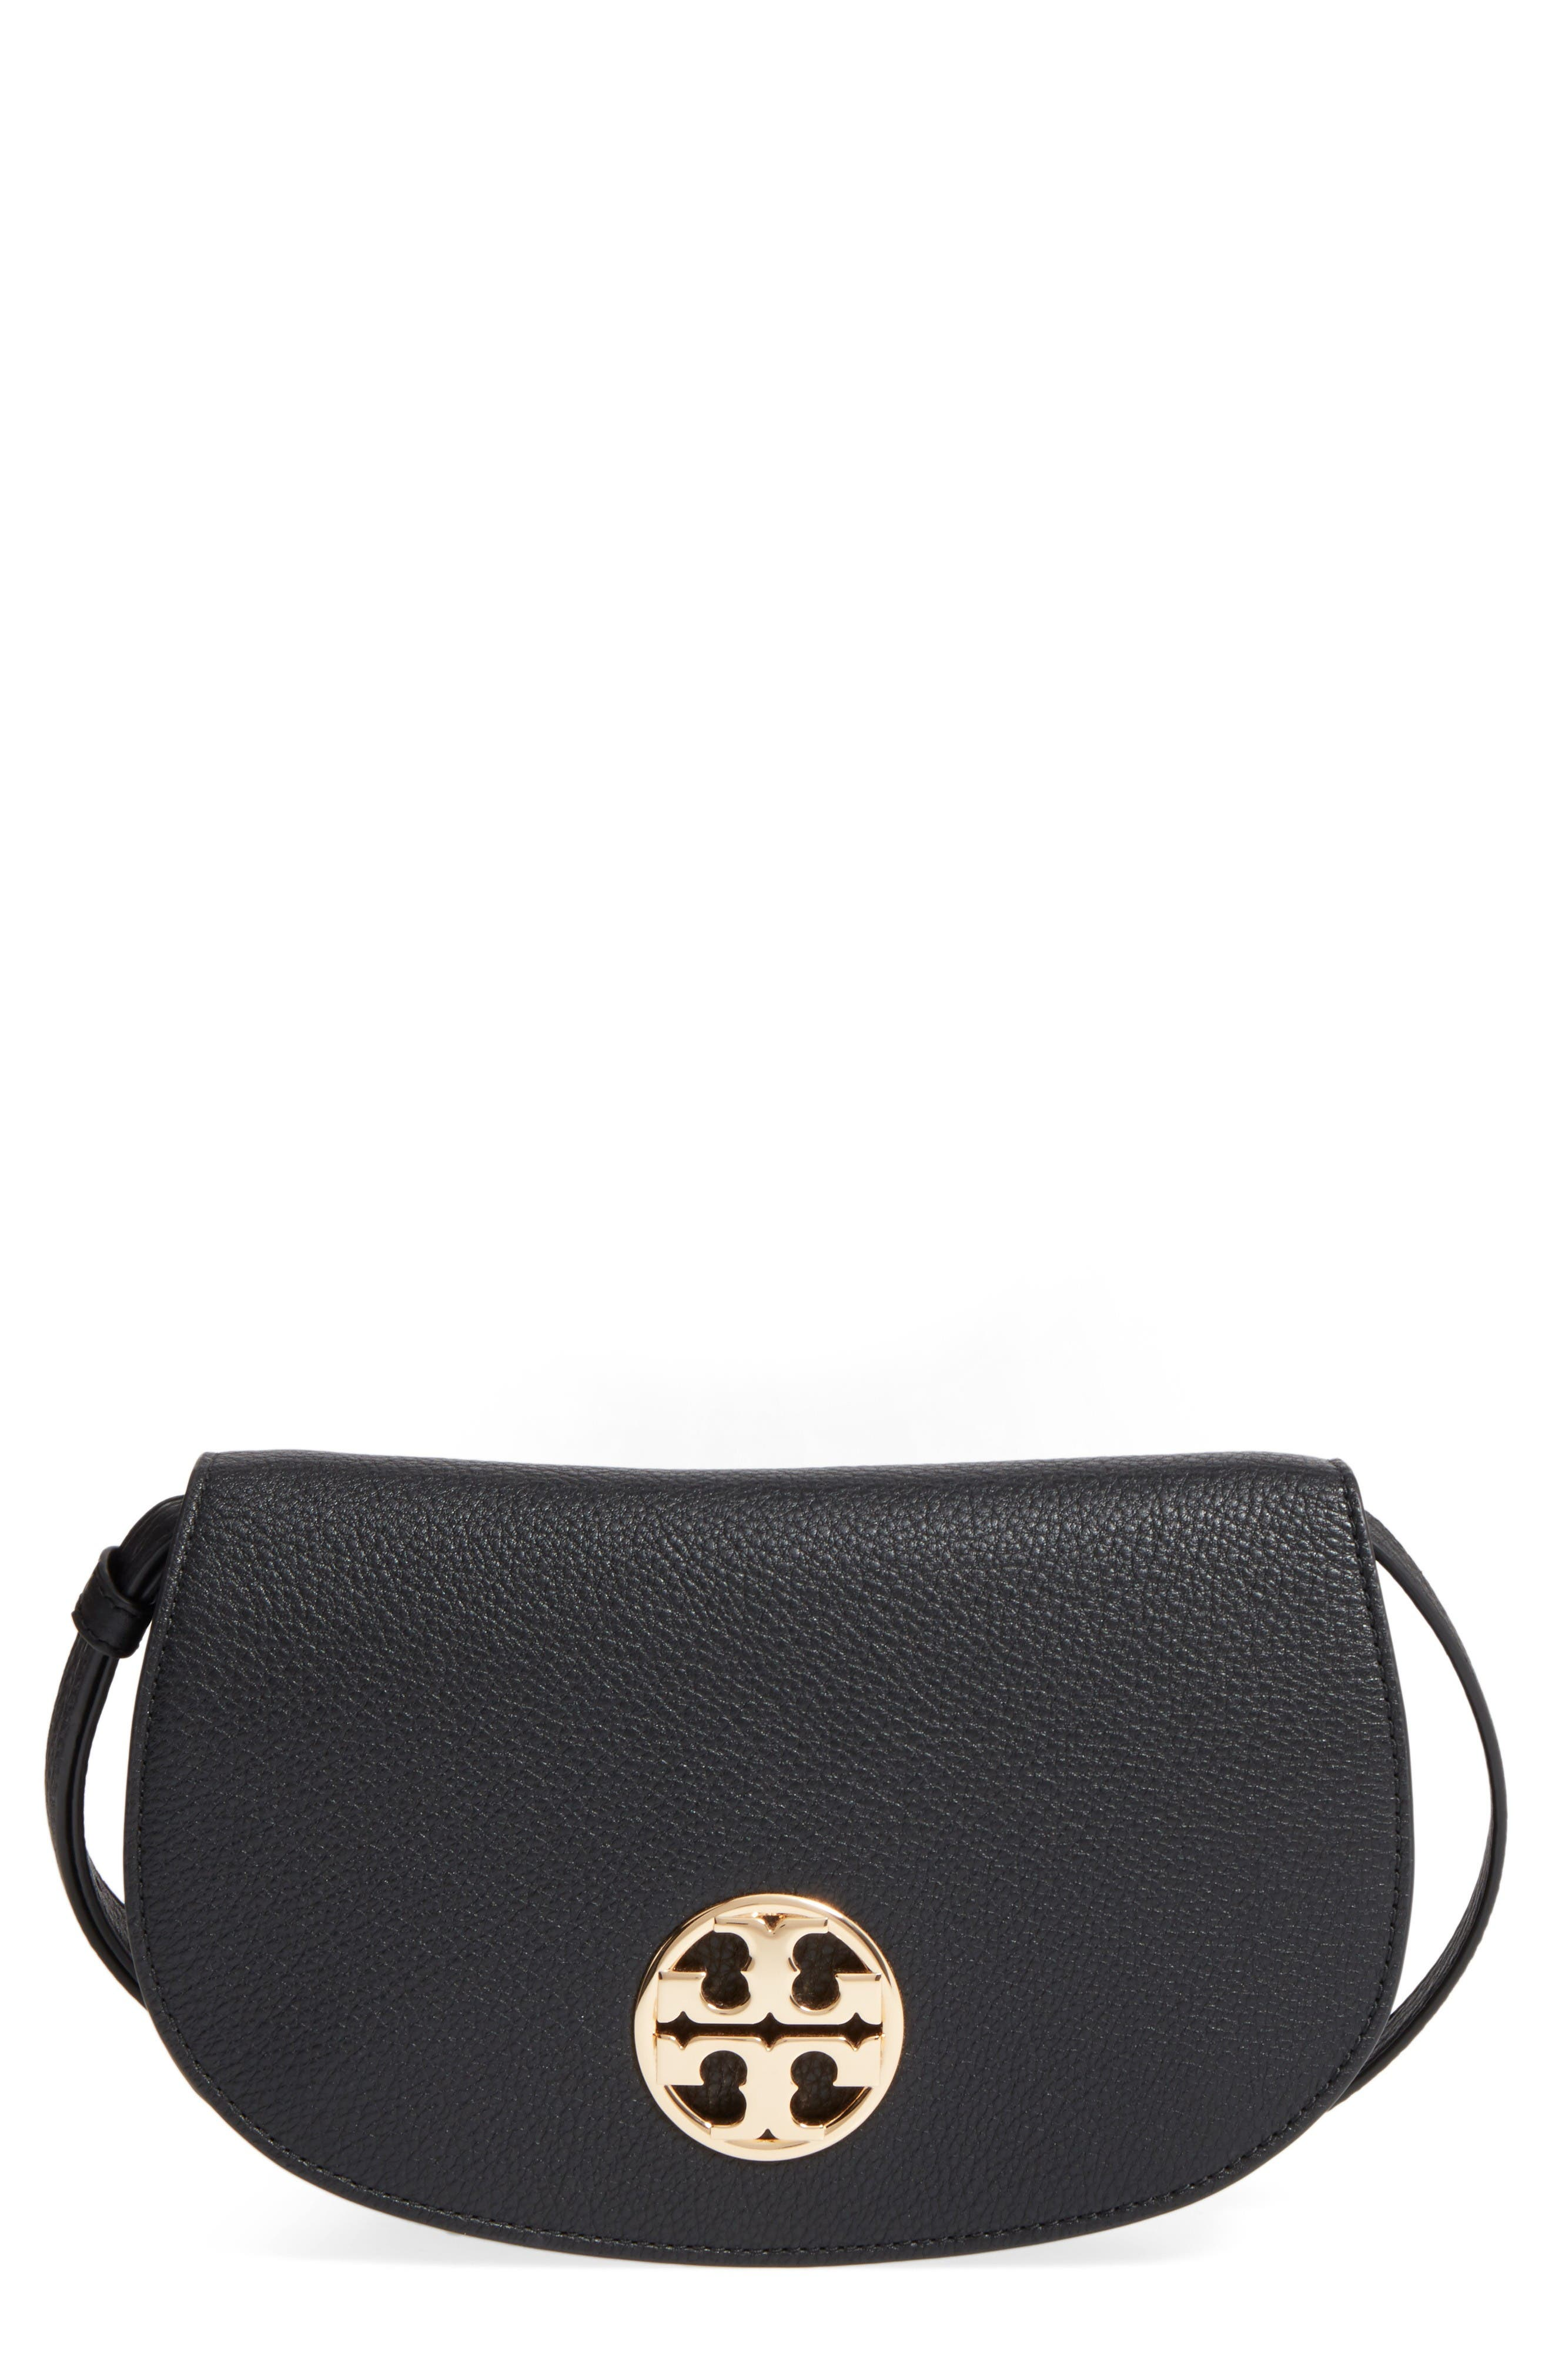 Main Image - Tory Burch Jamie Leather Clutch